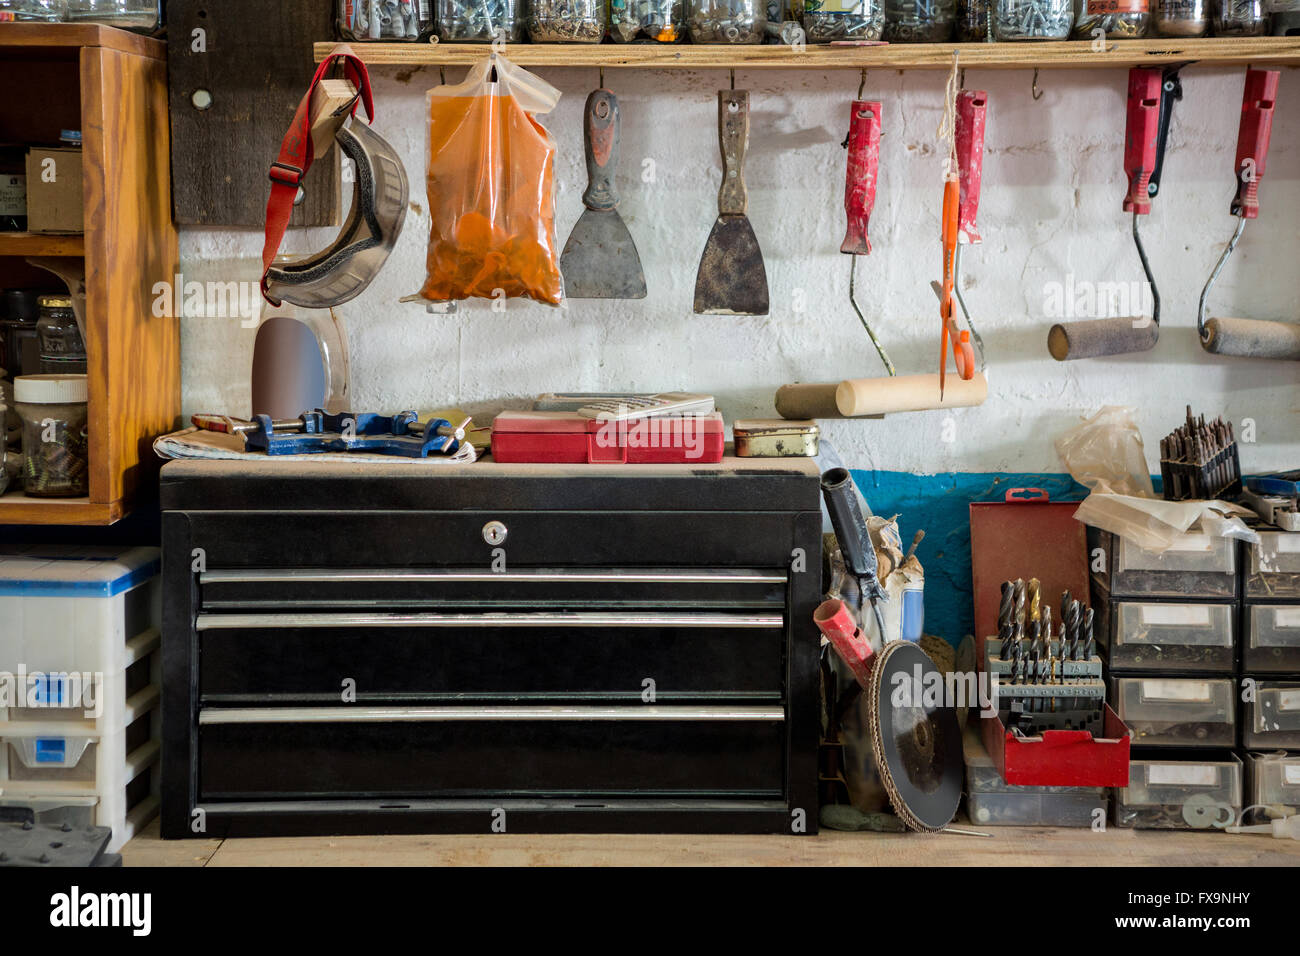 Carpenters workbench - Stock Image